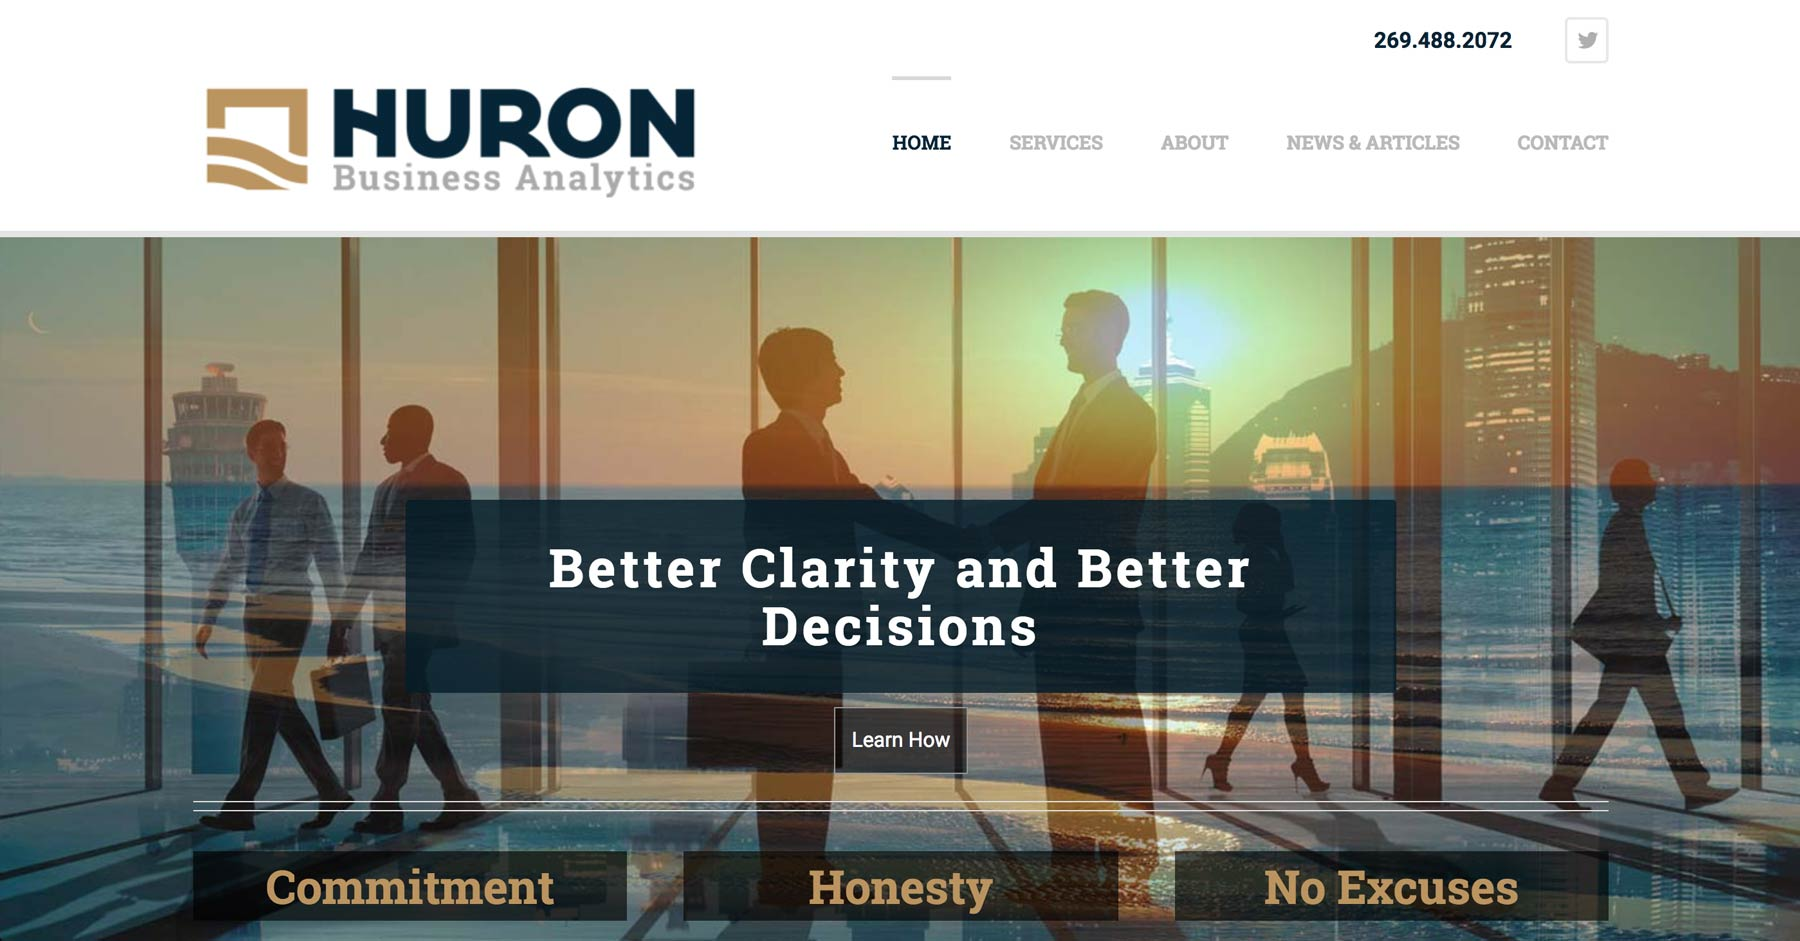 huron-business-analytics